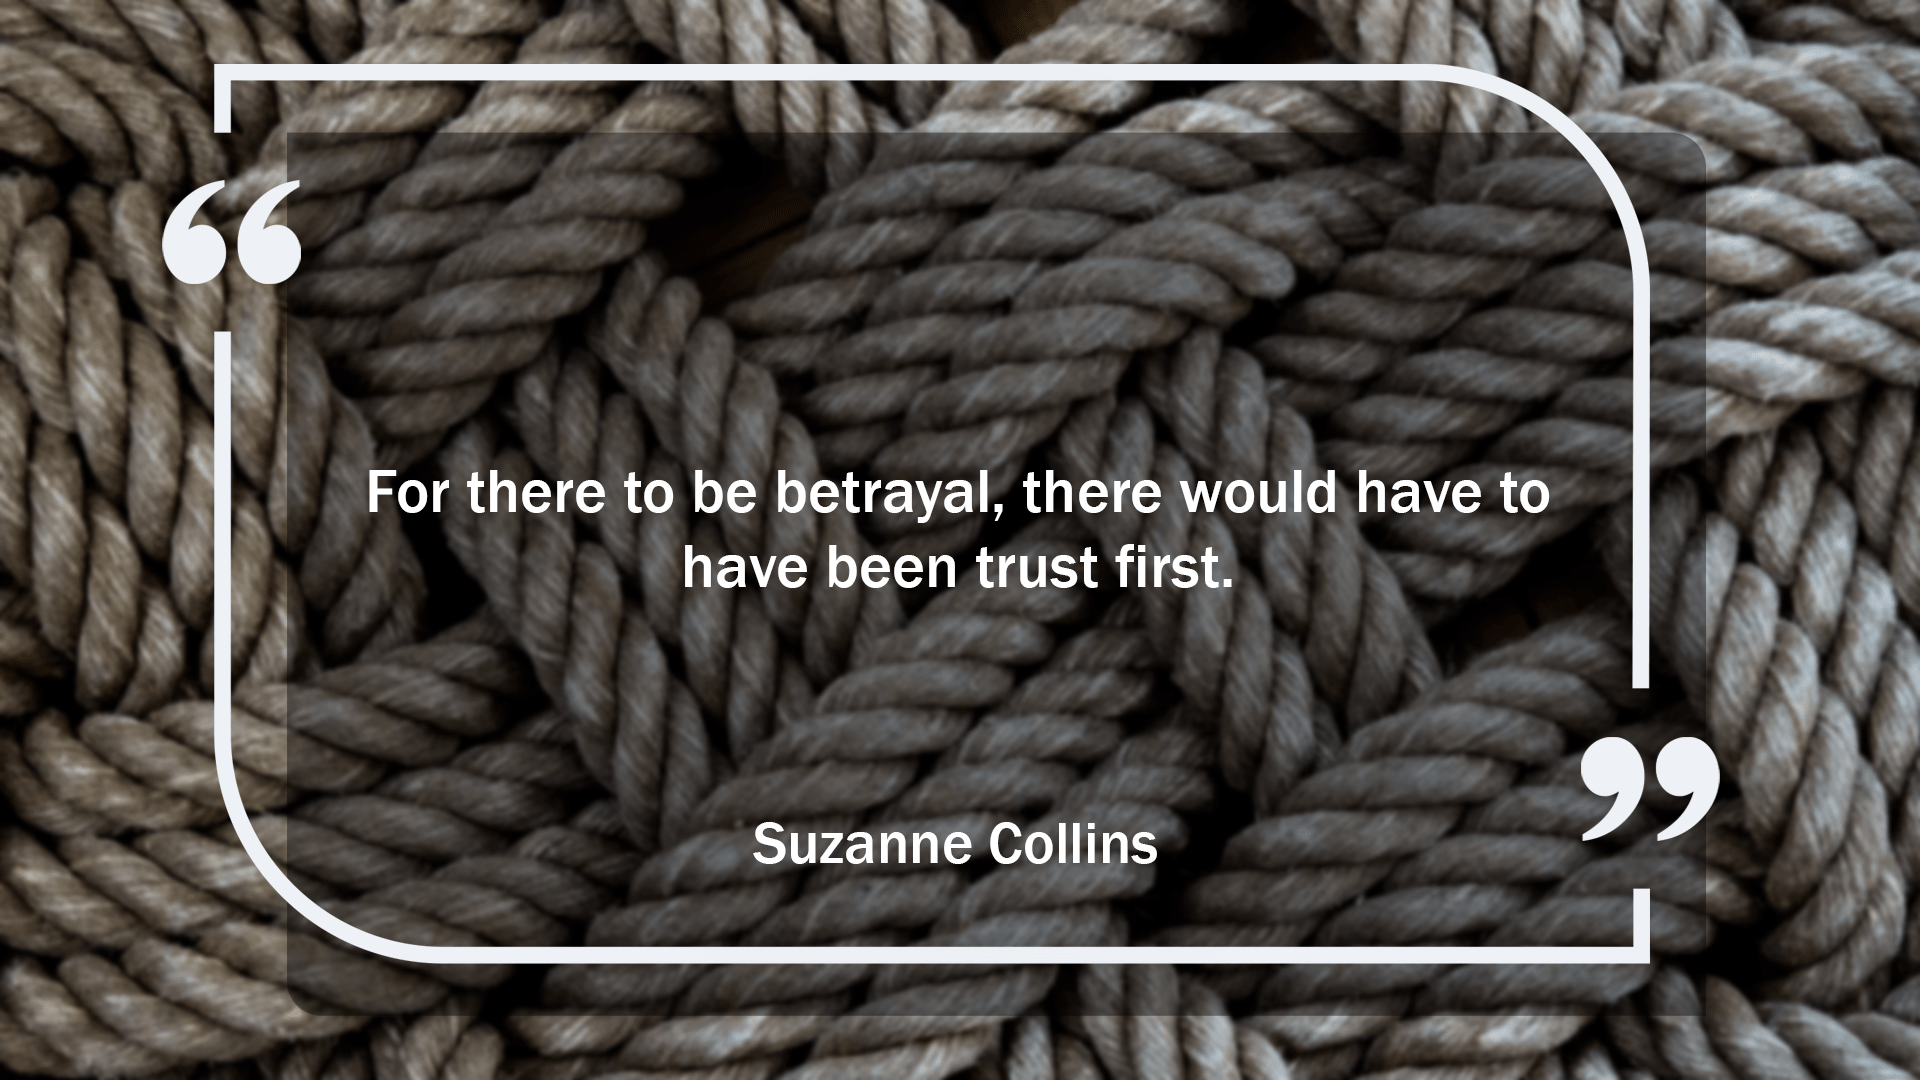 For there to be betrayal, there would have to have been trust first. – Suzanne Collins [1920 x 1080]